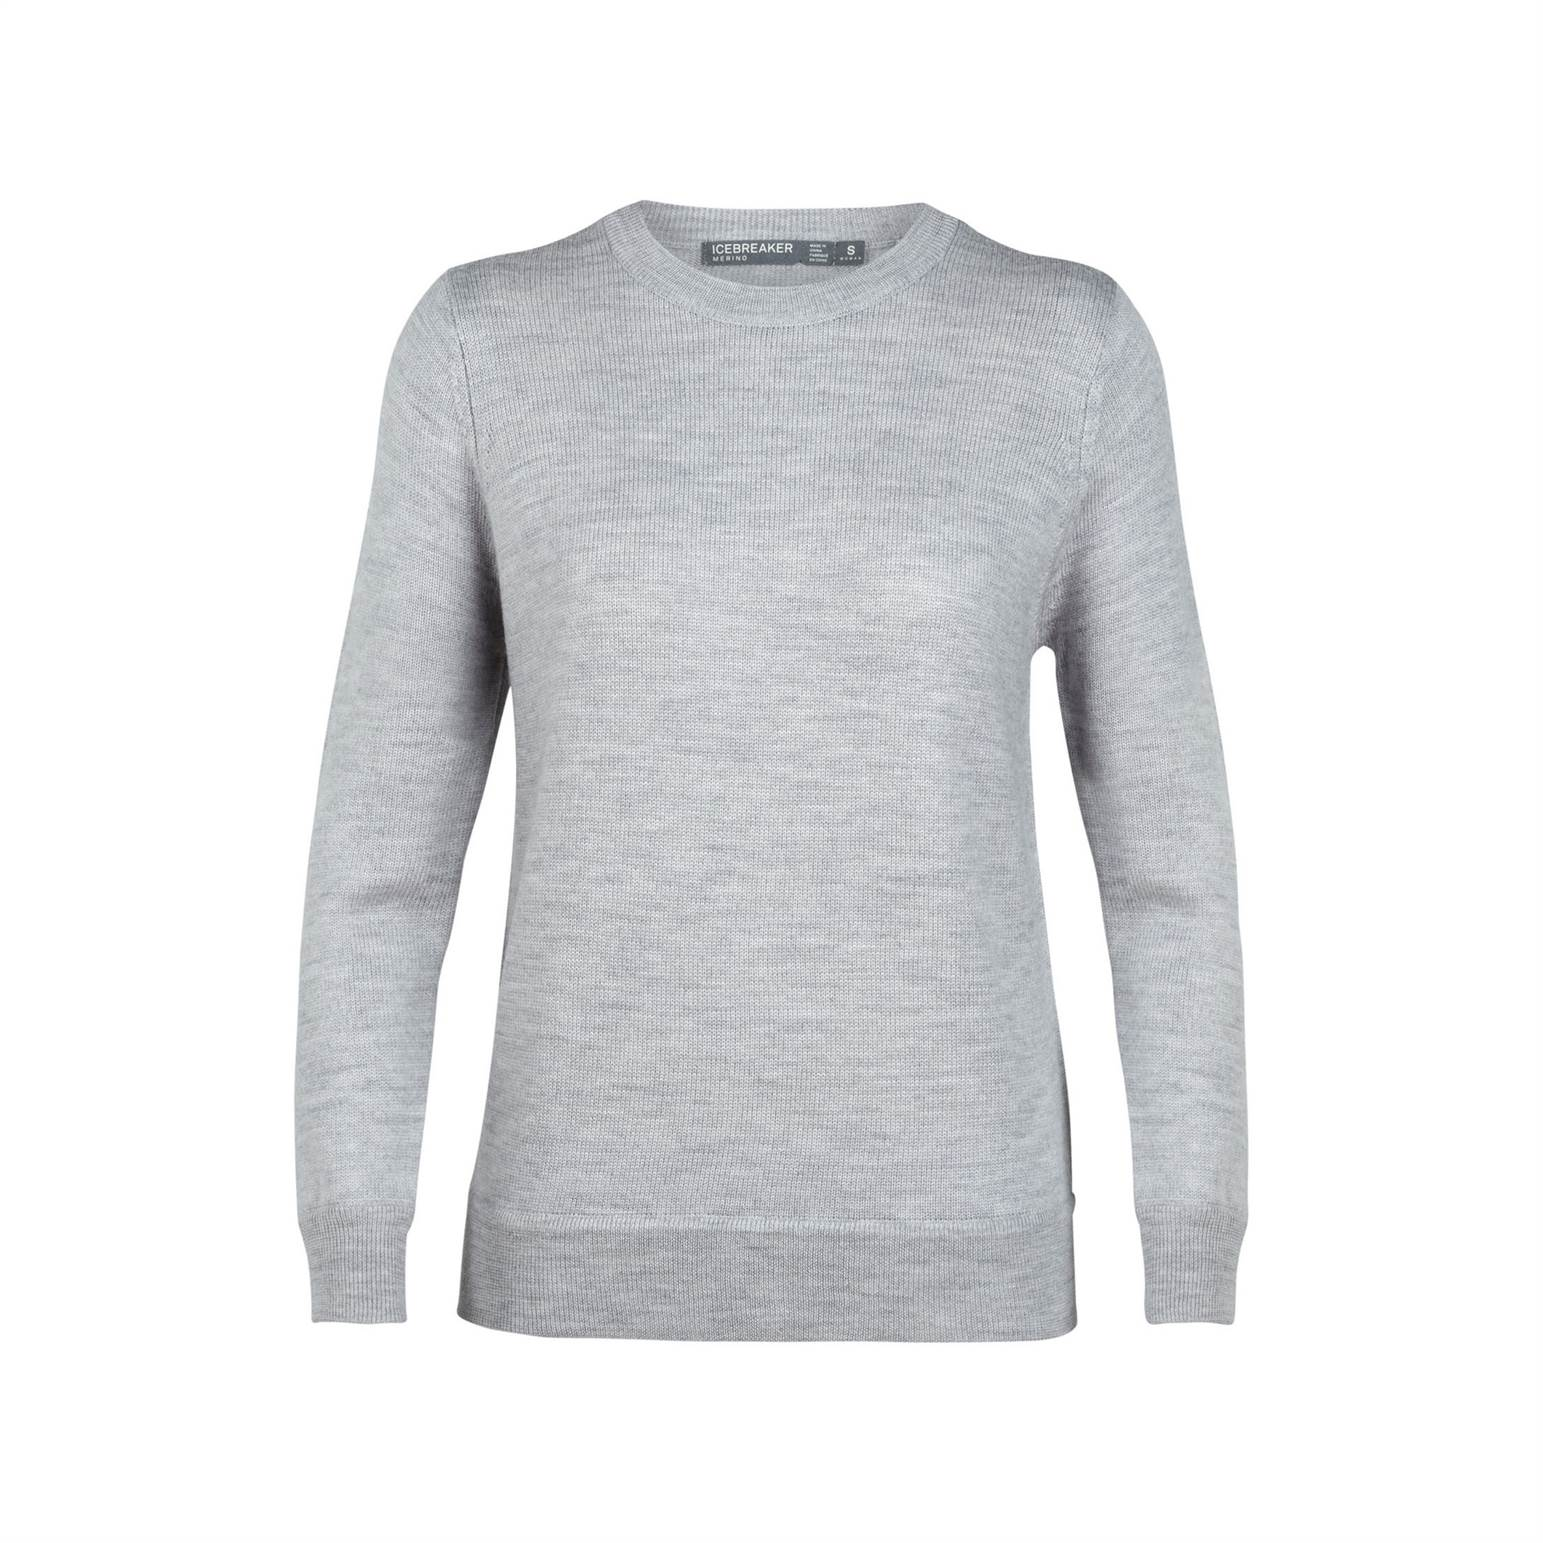 Muster Crewe Sweater - Women's